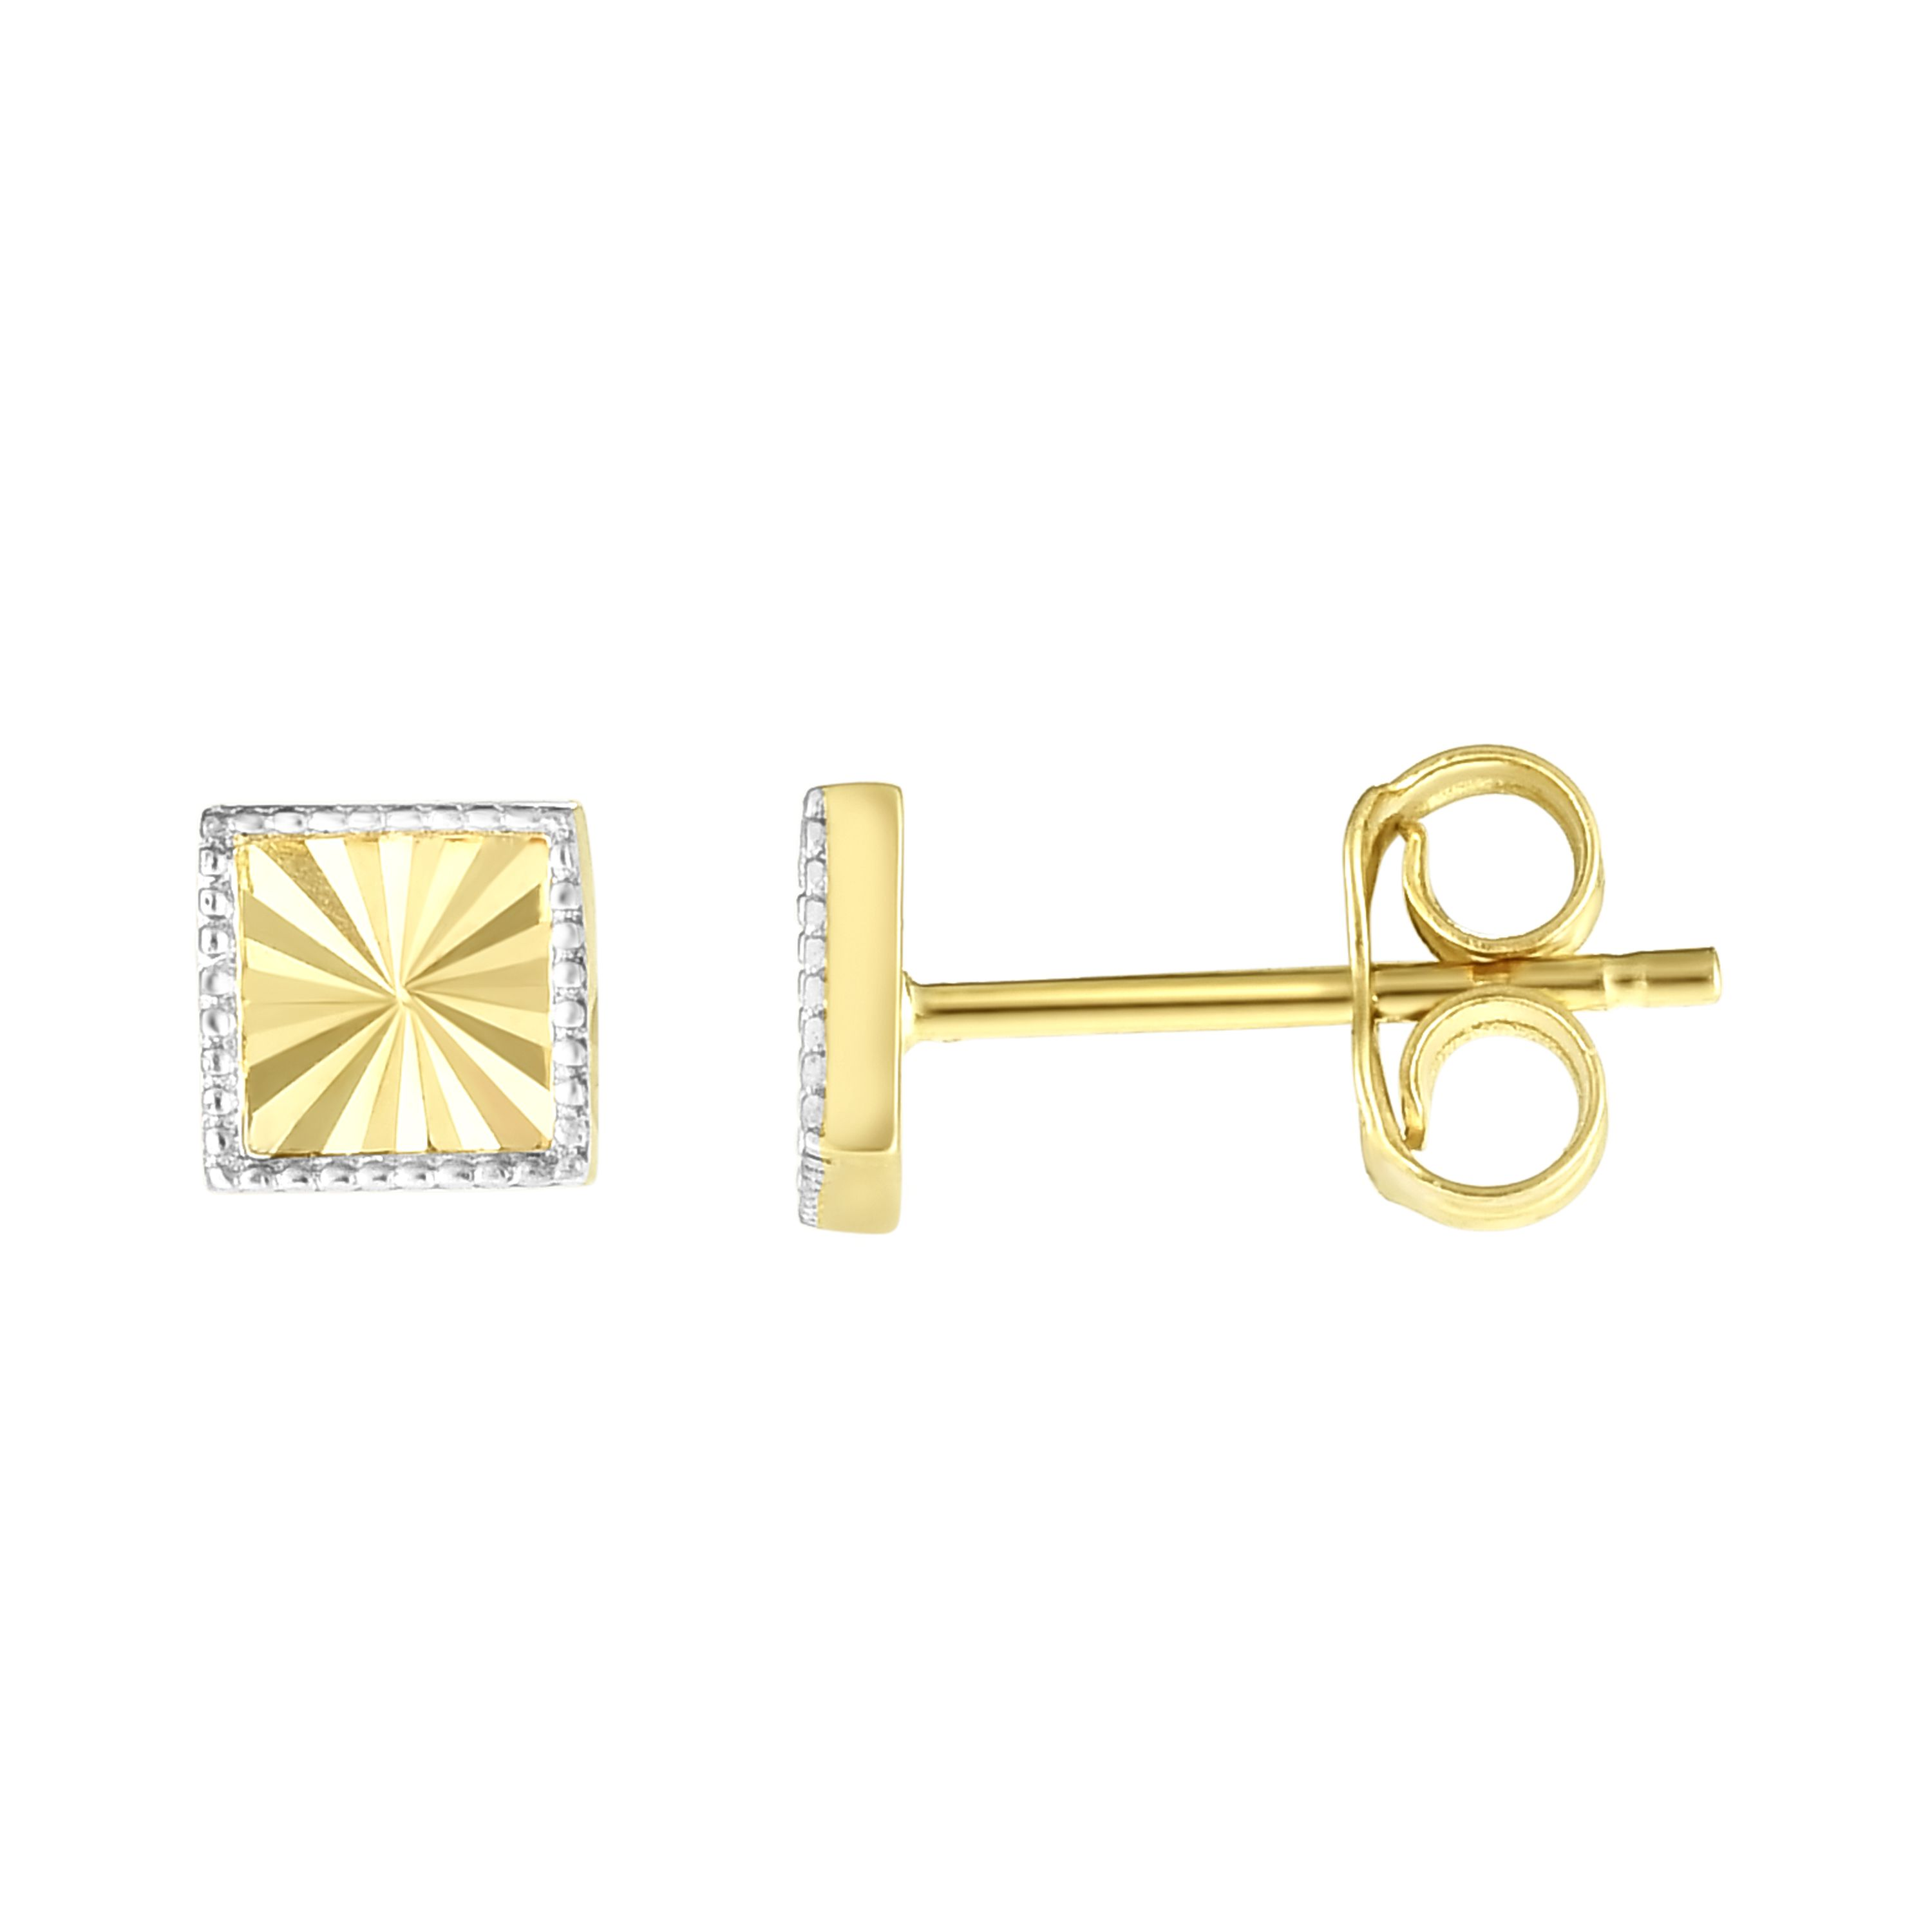 14K Yellow & White Gold Earring Wyatt's Jewelers Seattle, WA